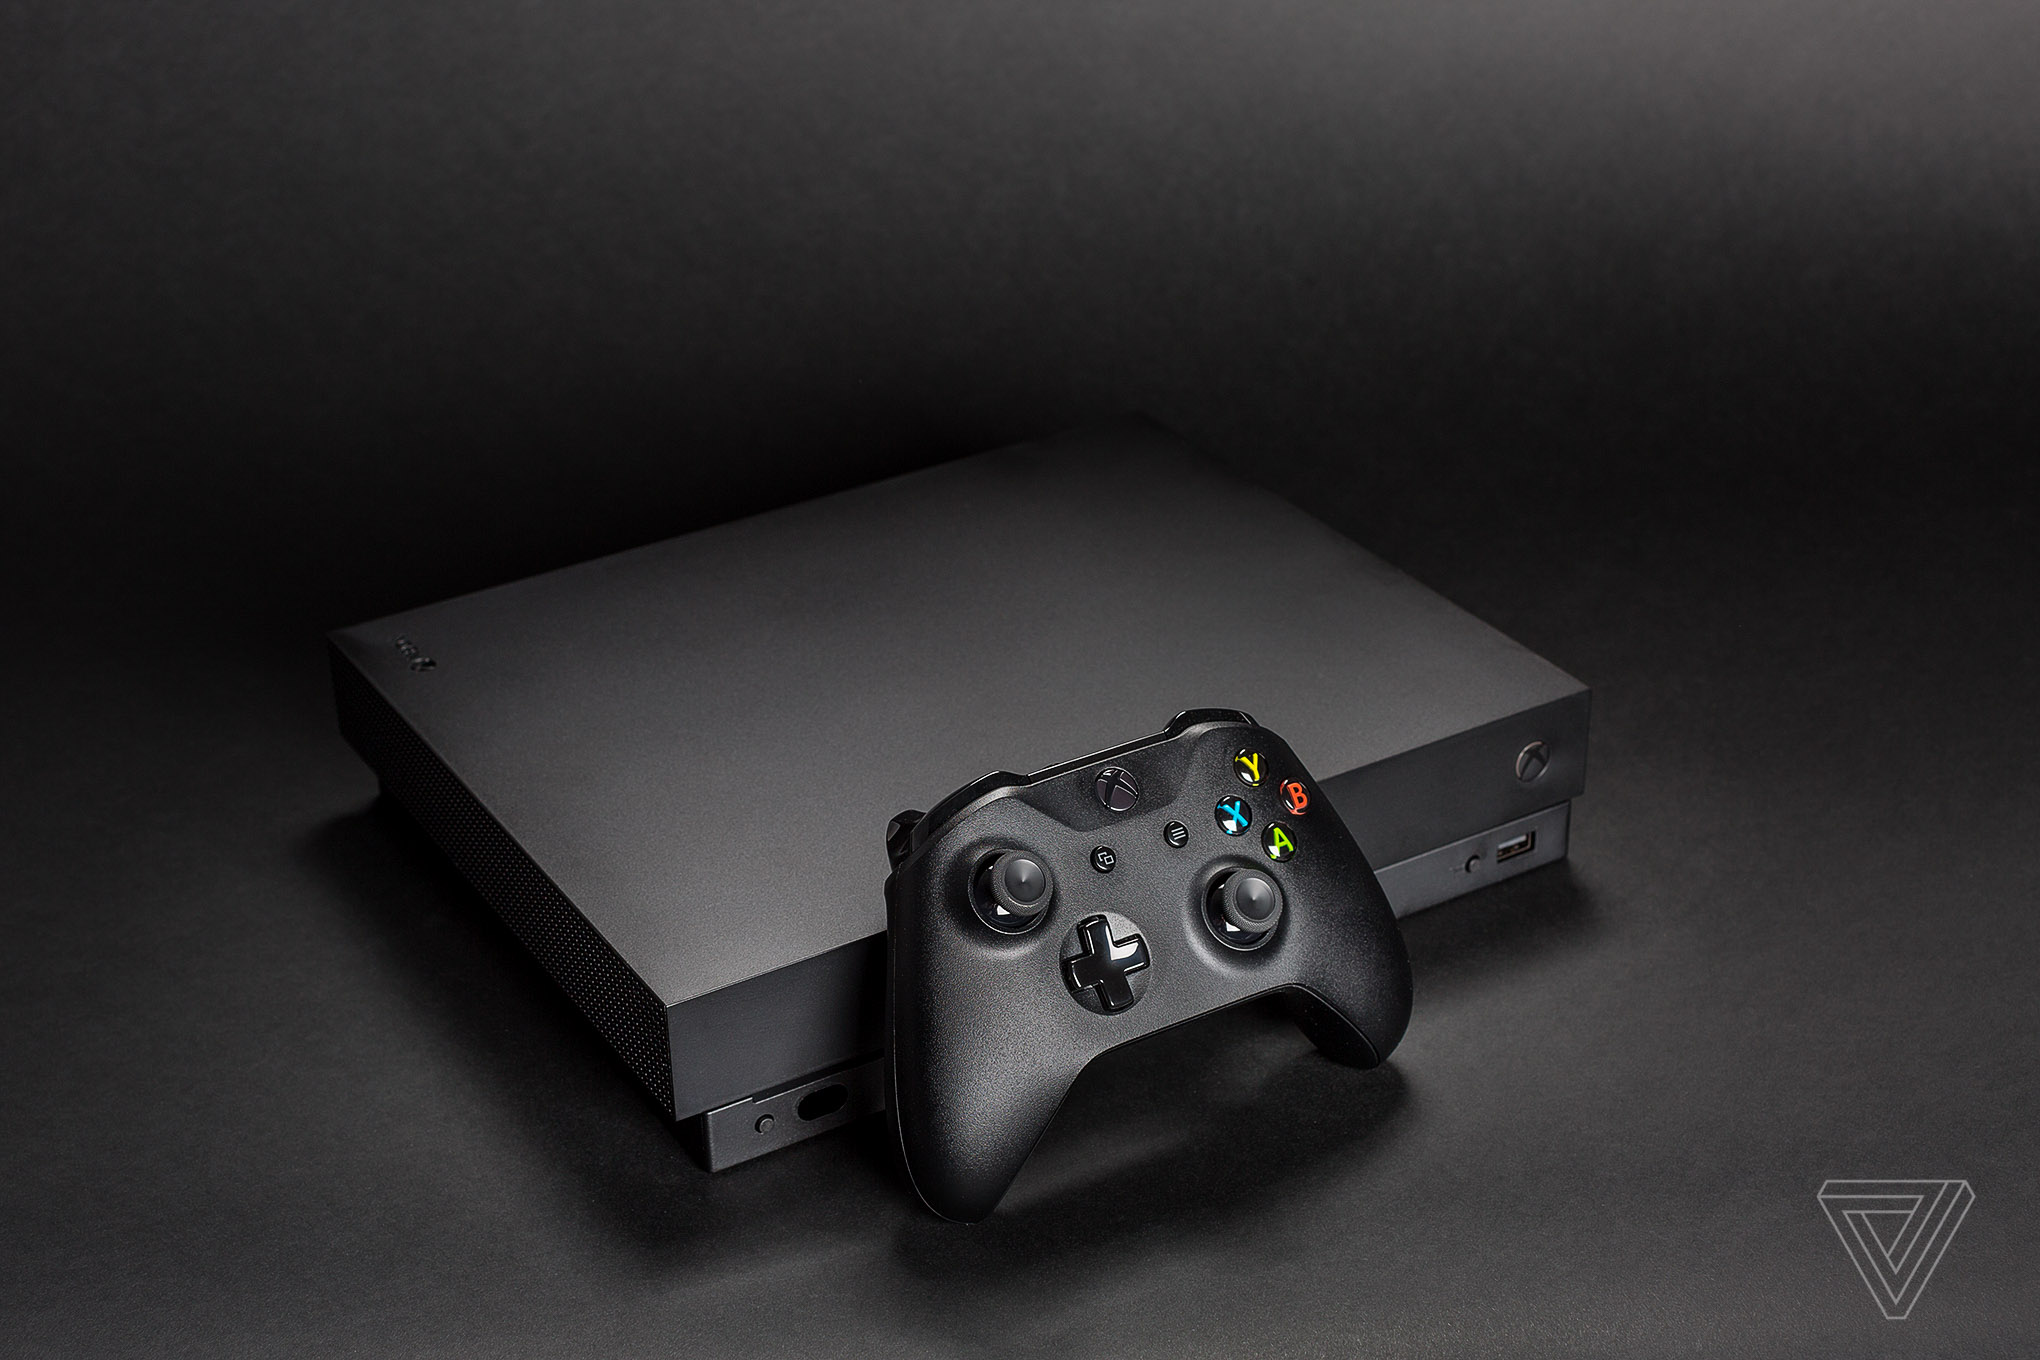 b2e956173b8 Xbox One X review - The Verge